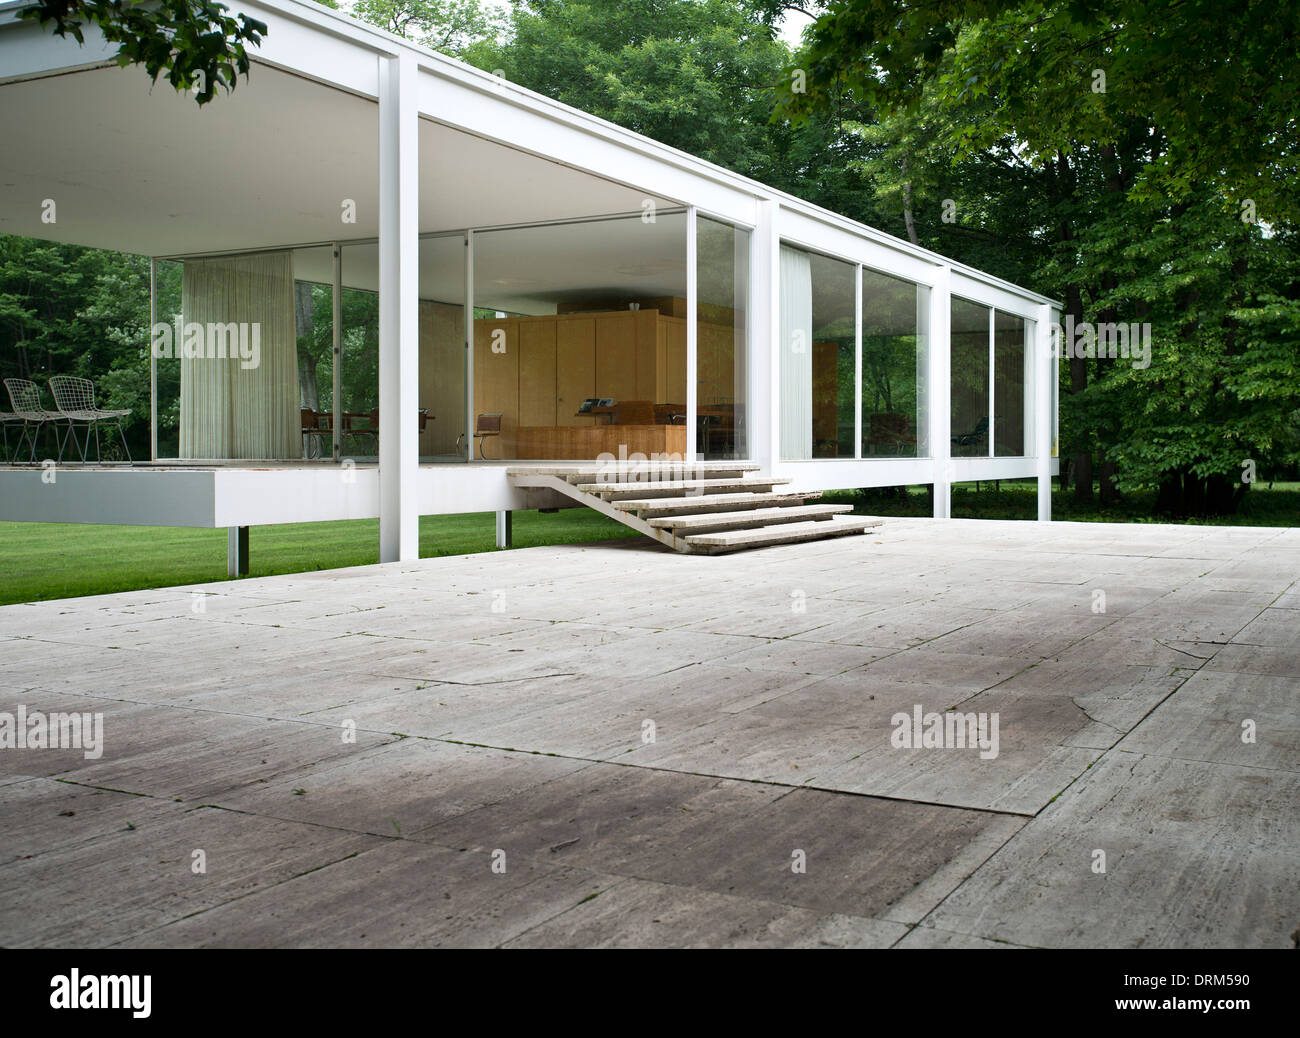 Ludwig Mies Van Der Rohe Farnsworth House Plano United States Architect Ludwig